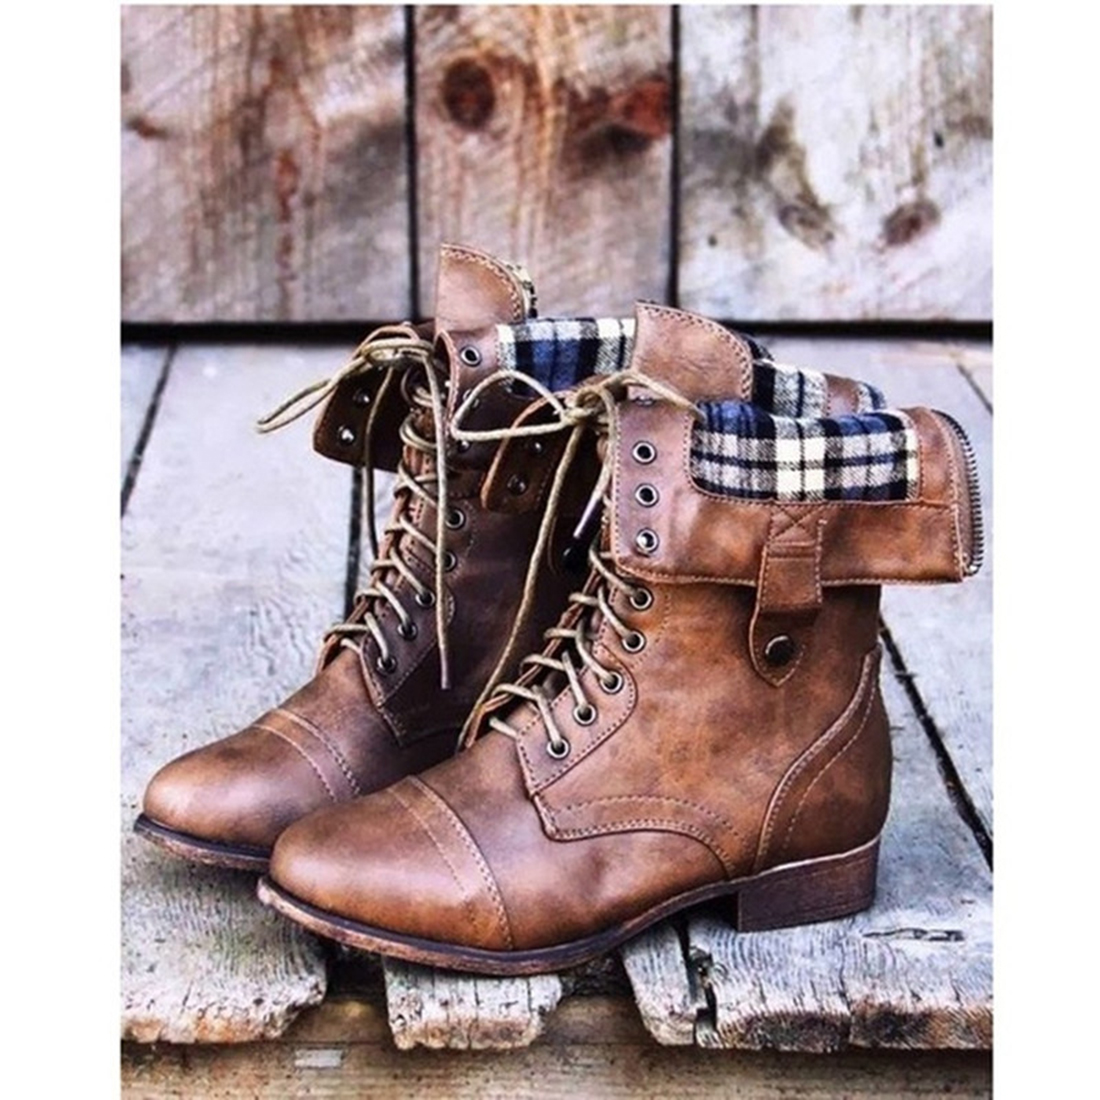 Women Boots 2017 Autumn winter women's shoes PU Leather Ankle Boots Cowboy Western Pointed Toe Punk Boots Ladies big size nikbea vintage western boots cowboy ankle boots for women pointed toe boots winter 2016 autumn shoes pu chunky low heel booties